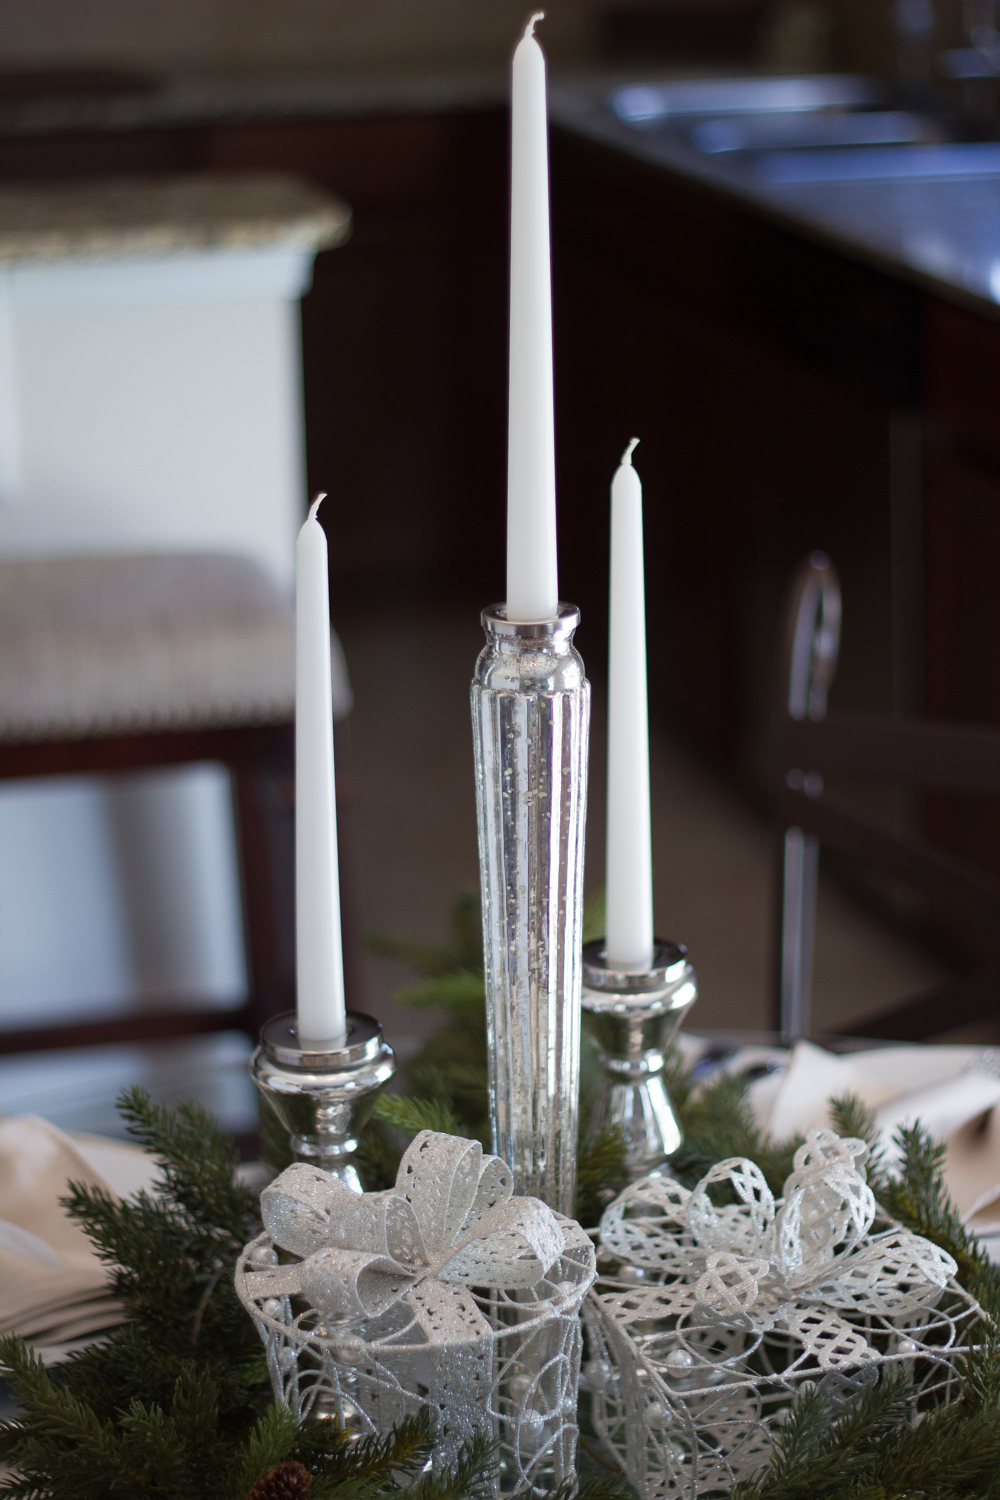 Christmas tablescape small table #ad #AtHomeforChristmas #AtHomeFinds #decor #decortips